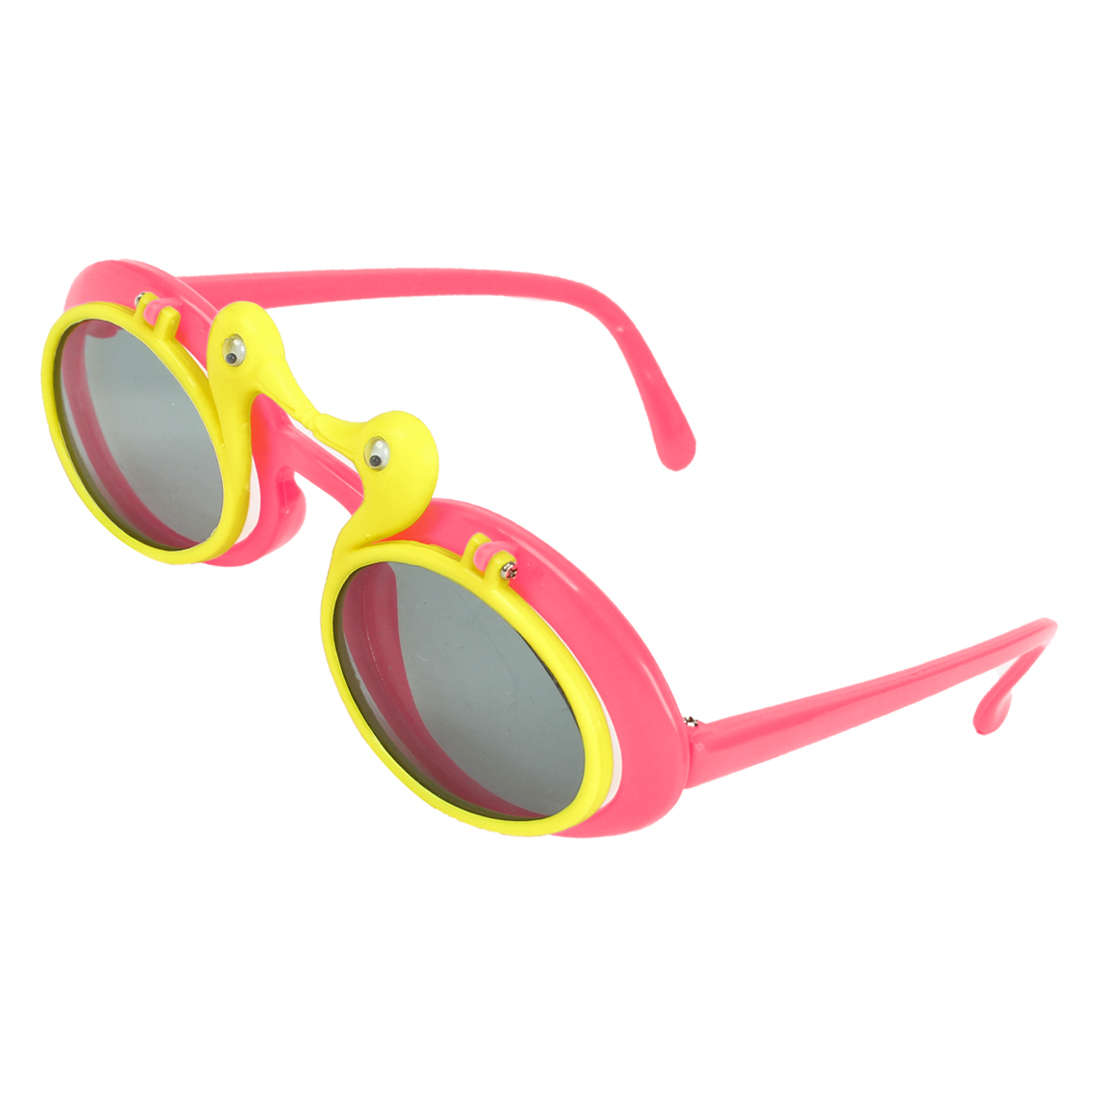 Hot Pink Yellow Duck Design Plastic Flip Up Sunglasses for Children